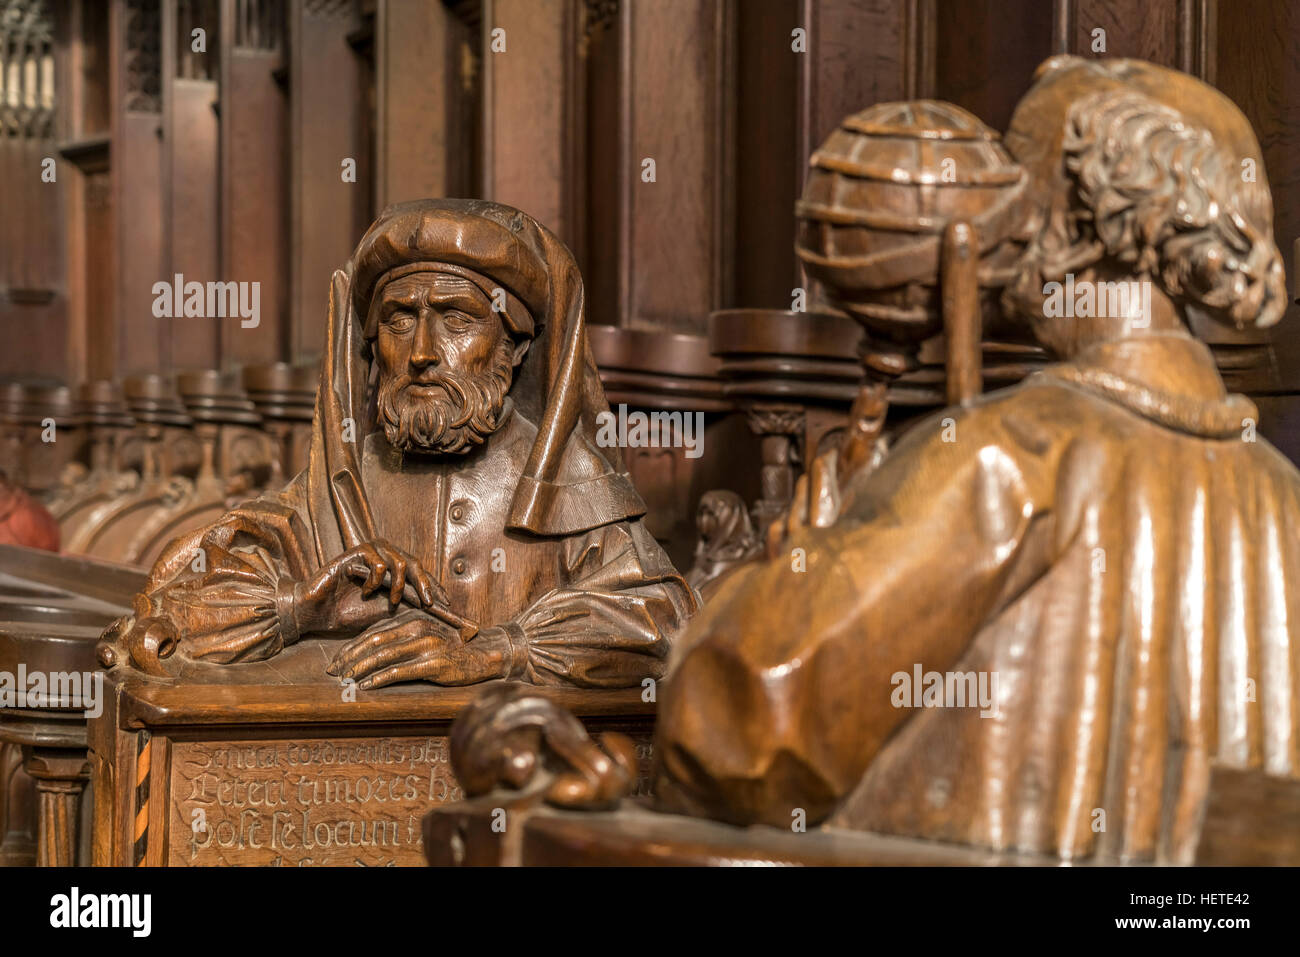 choir stalls with carved busts,  Ulm Minster interior, Ulm, Baden-Württemberg, Germany, Europe - Stock Image